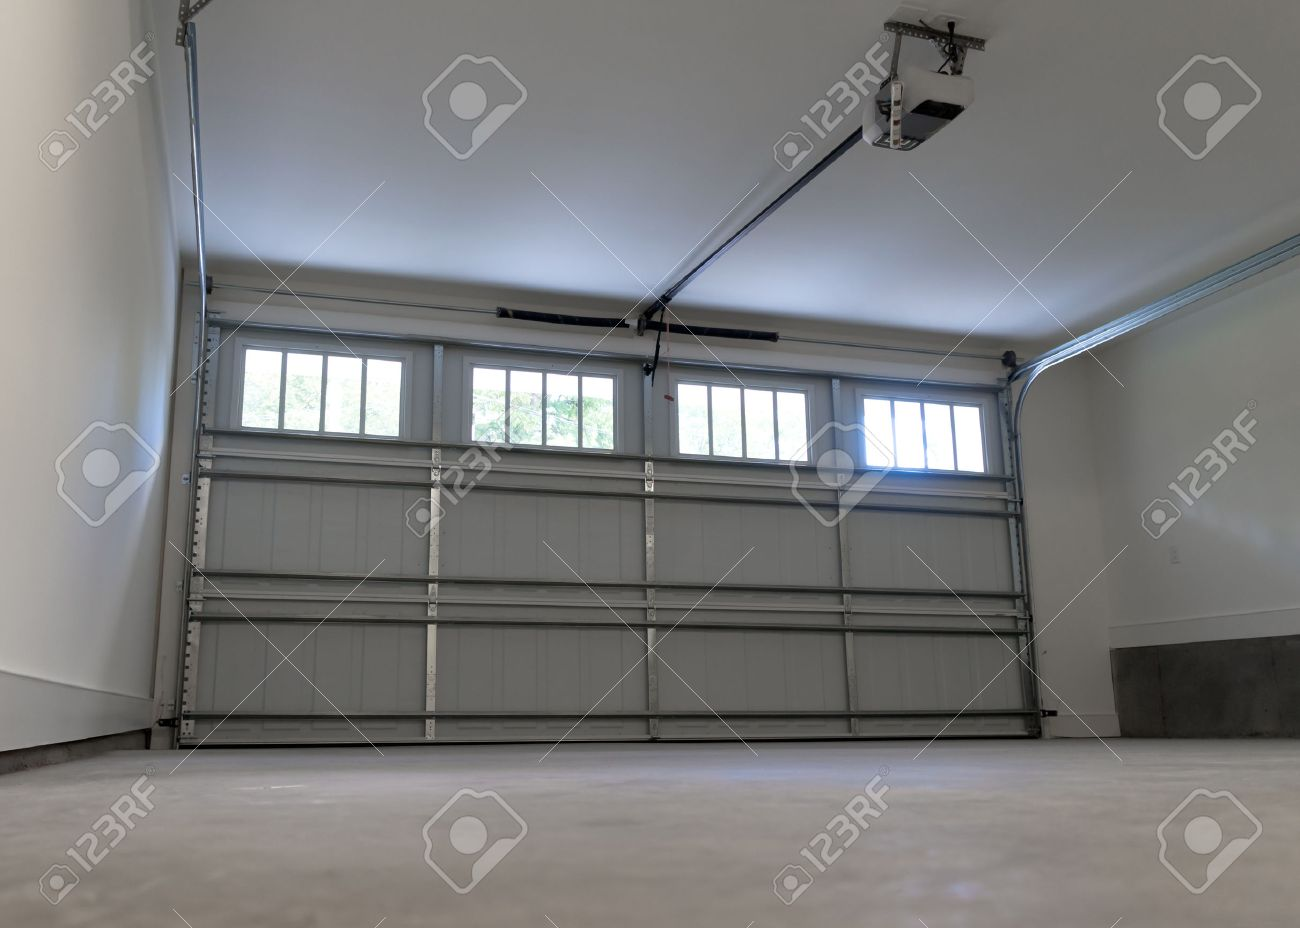 two car garage stock photos pictures royalty free two car two car garage residential house two car garage interior